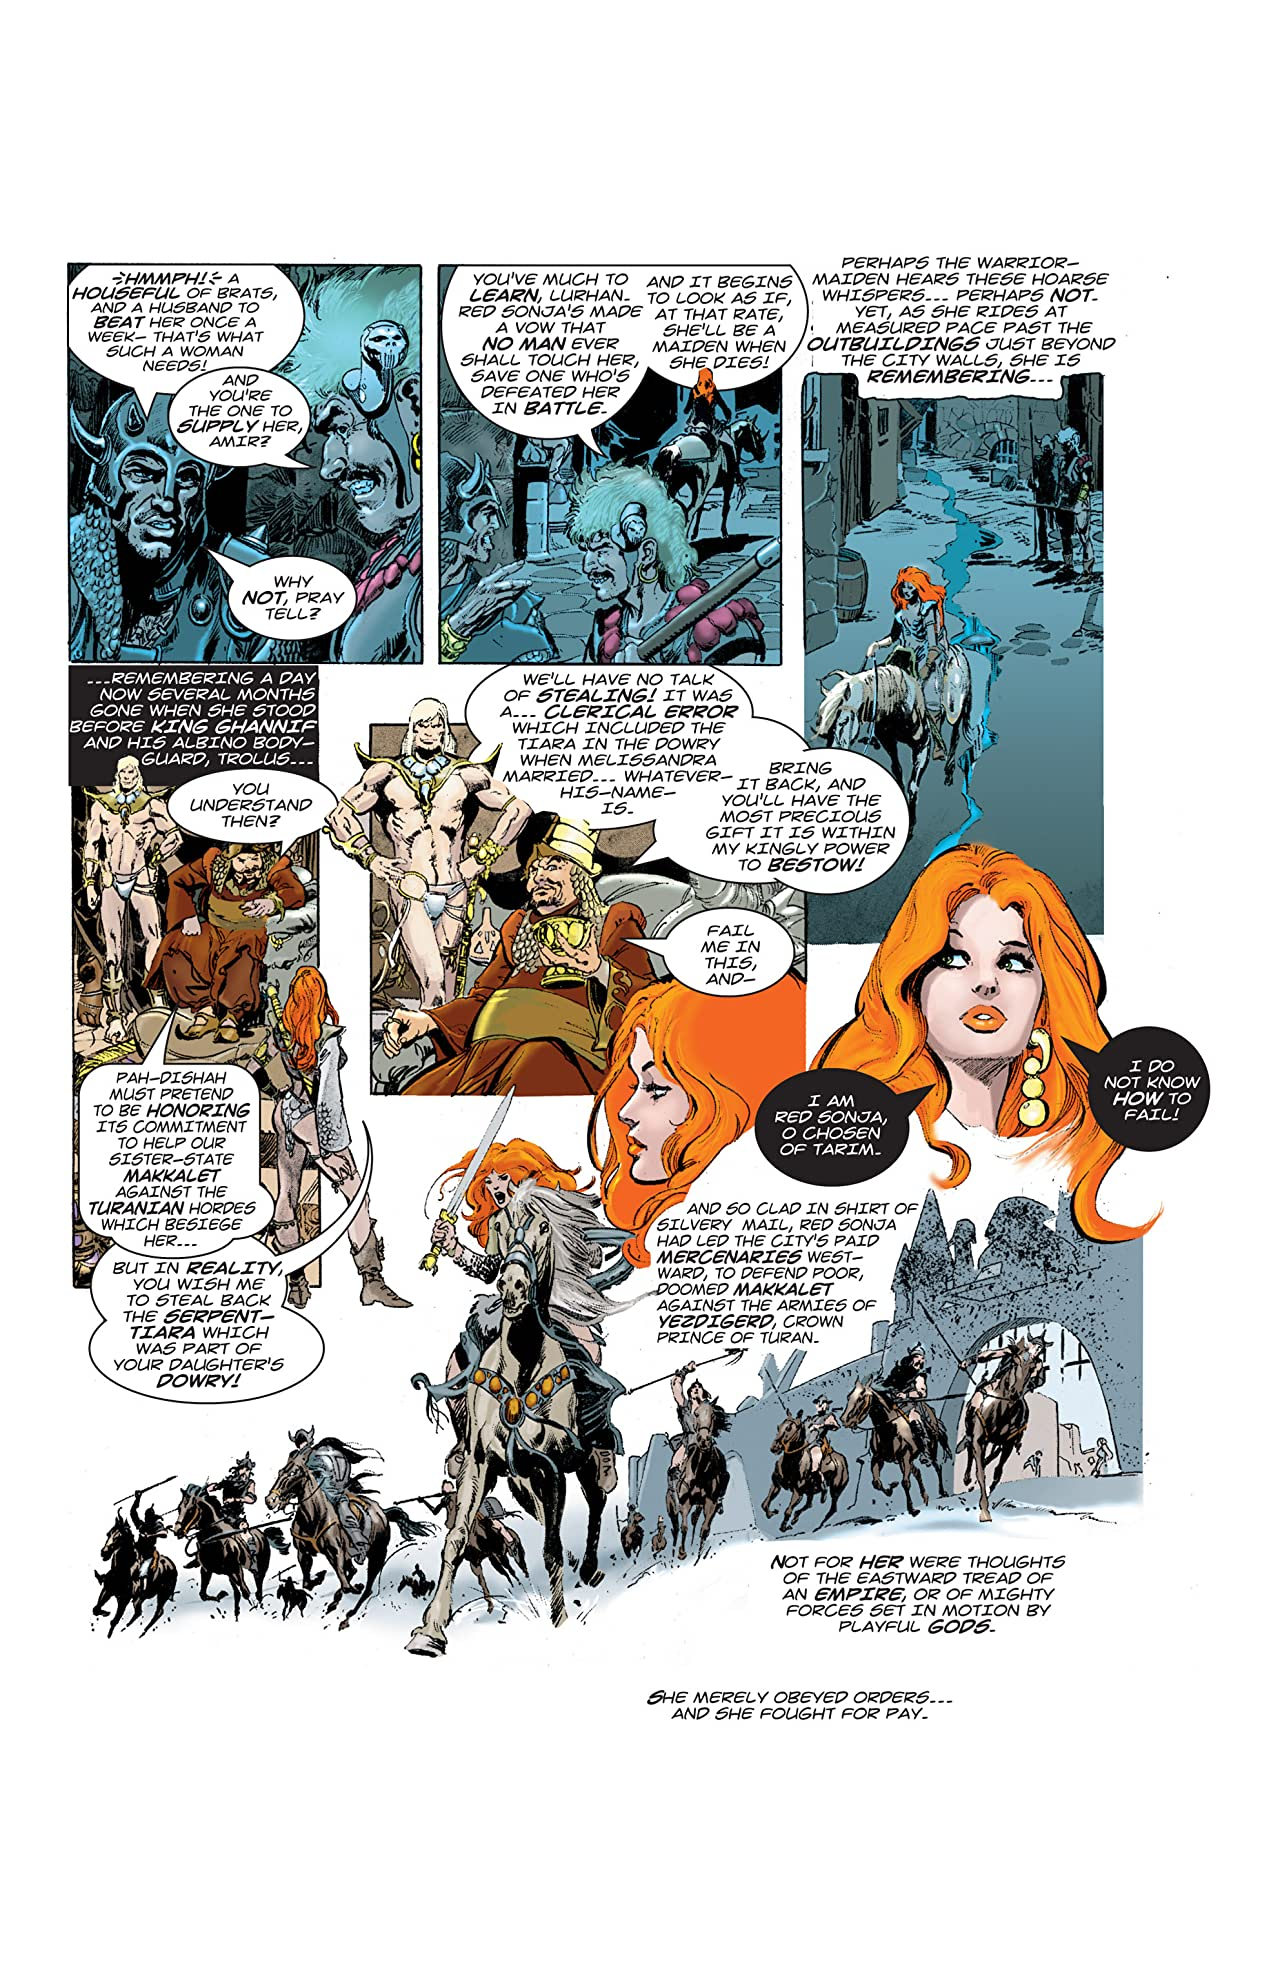 The Adventures of Red Sonja Vol. 1